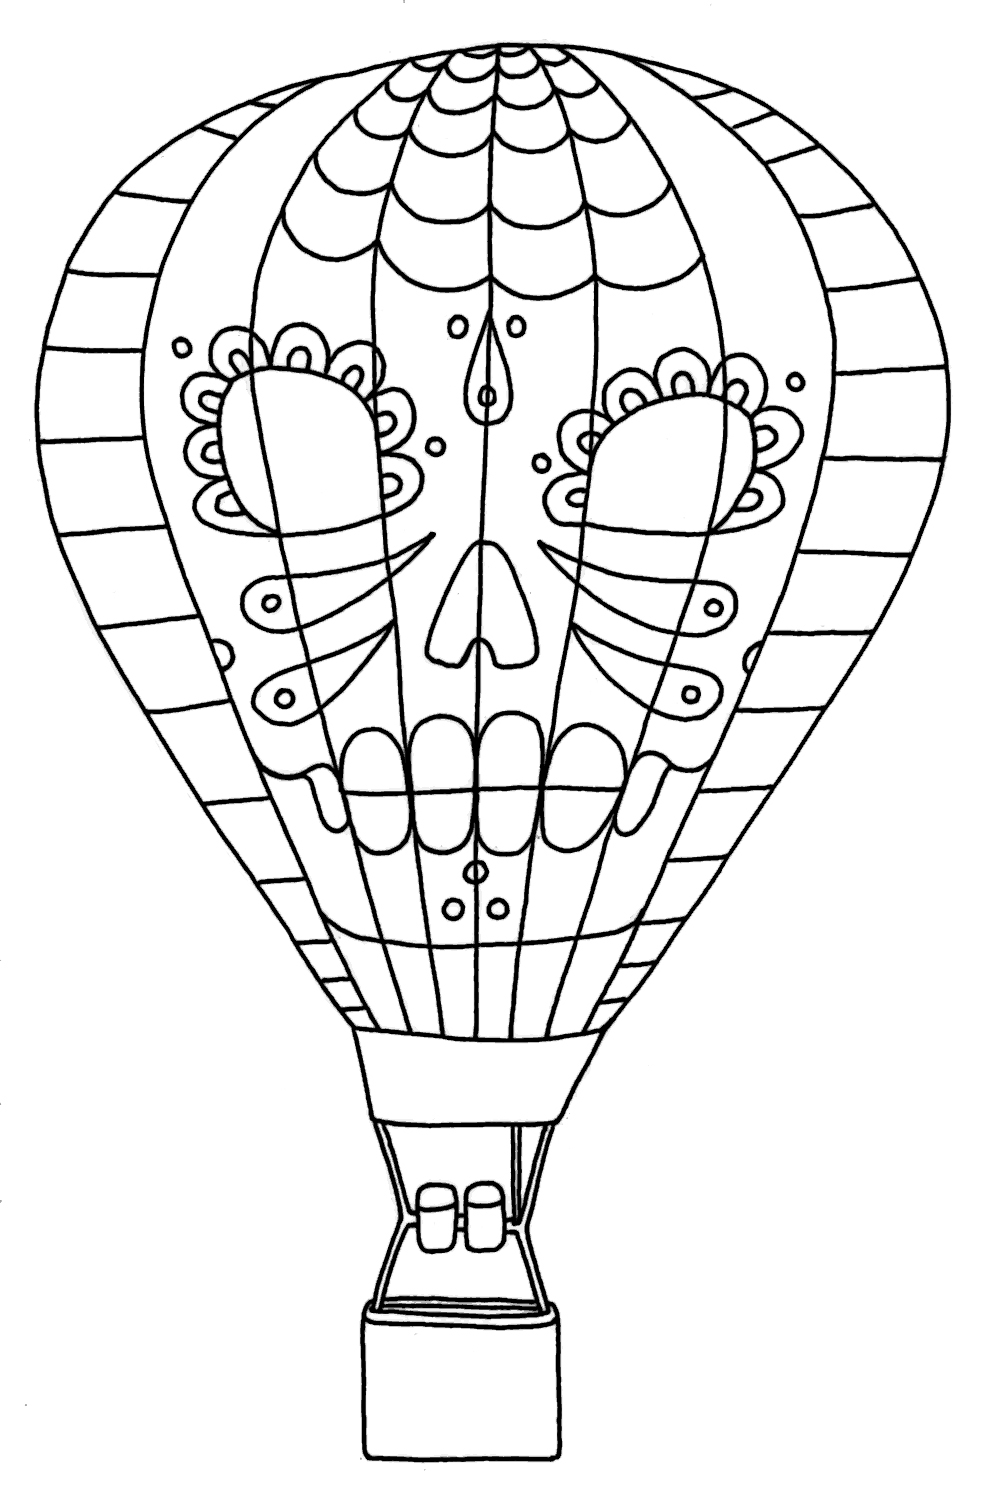 balloons to color yucca flats nm wenchkin39s coloring pages dia de los color to balloons